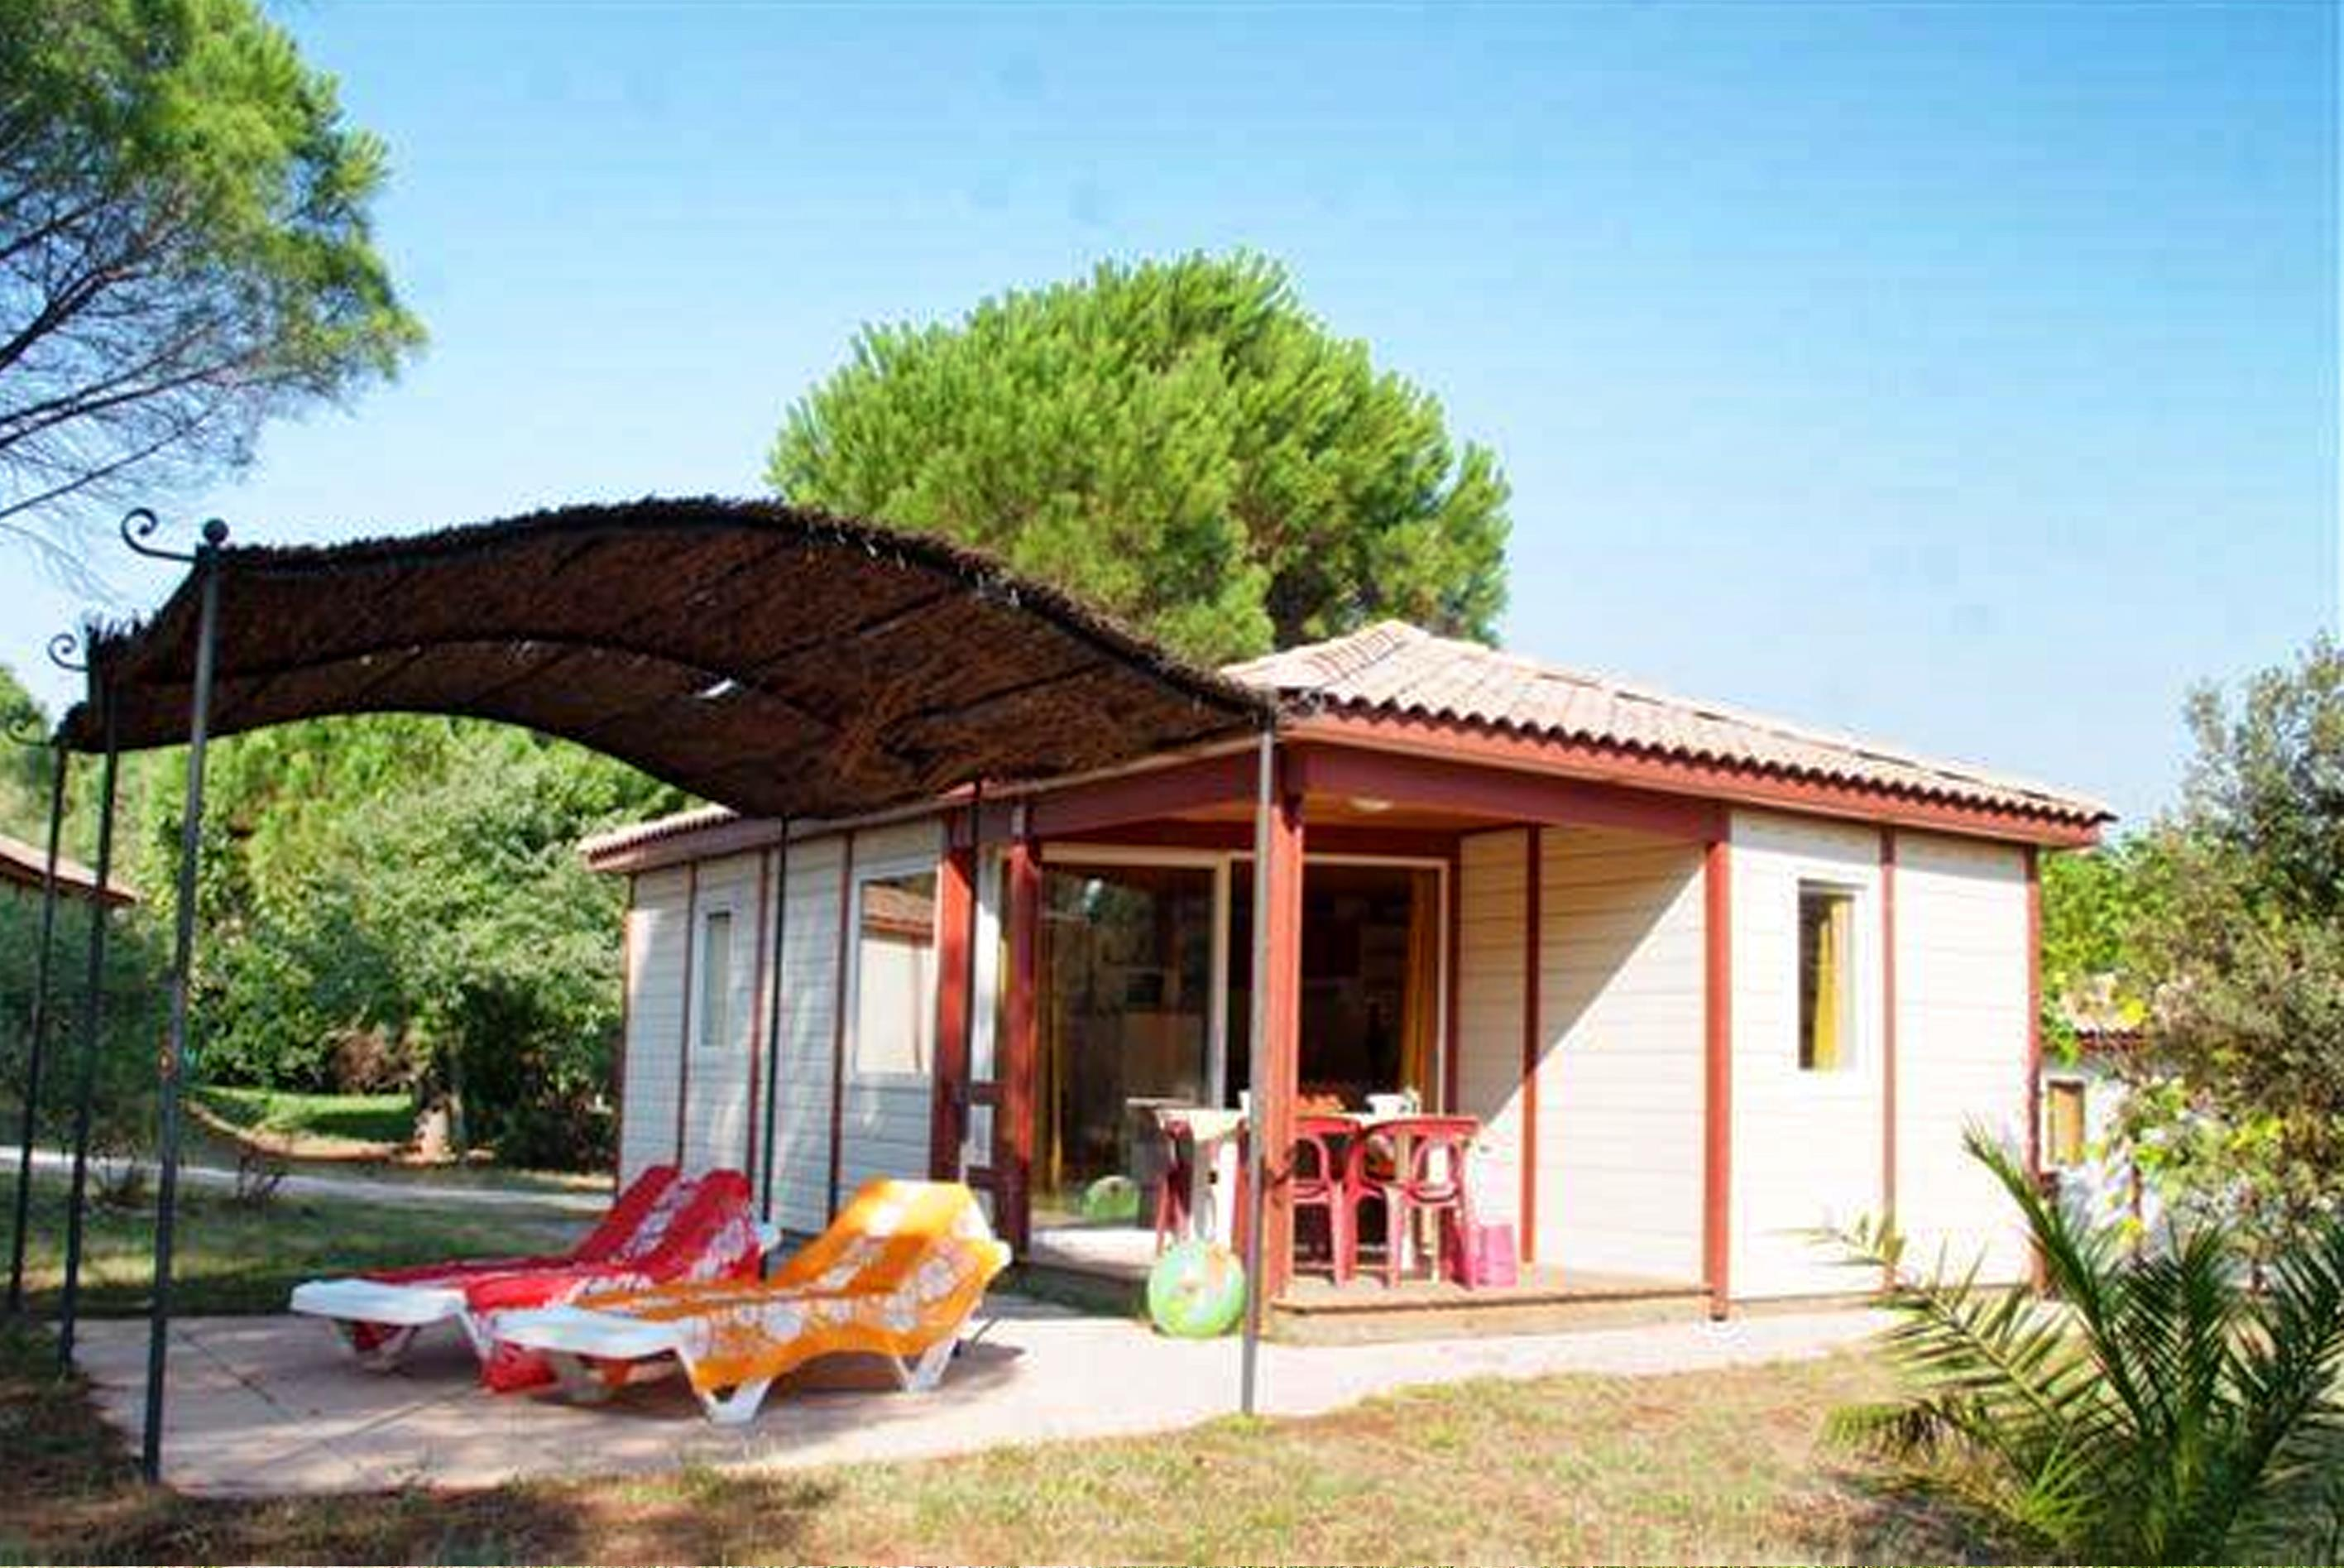 Location - Tulum 6 Pers. + 1 Place Véhicule. Eco - Camping Les Cigales